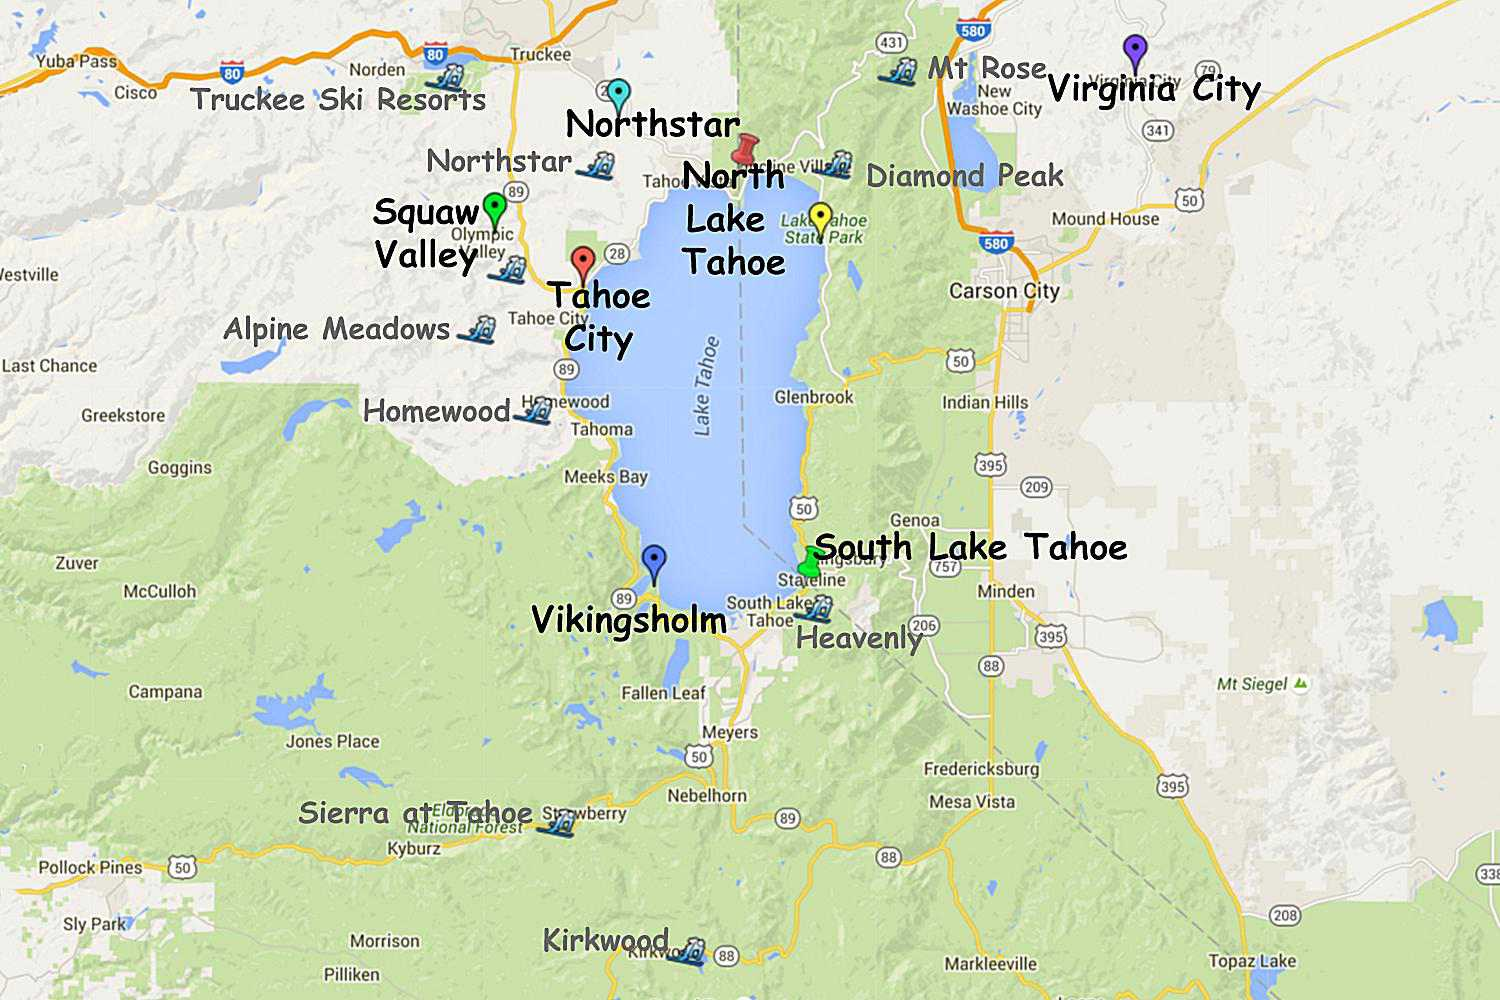 Guide to Planning a Lake Tahoe California Vacation on lake tahoe golf course map, lake tahoe mountain map, lake tahoe winter map, northstar resort tahoe map, lake tahoe casinos, lake tahoe snow, lake tahoe mapguide, hyatt regency lake tahoe resort map, lake tahoe points of interest map, squaw valley resort map, california ski areas map, lake tahoe skiing, lake tahoe national forest map, ski bc map, lake tahoe granlibakken resort, lake tahoe tourist map, lake tahoe sierra resort, lake tahoe airport map, christmas valley lake tahoe map, lake tahoe tee shirt,